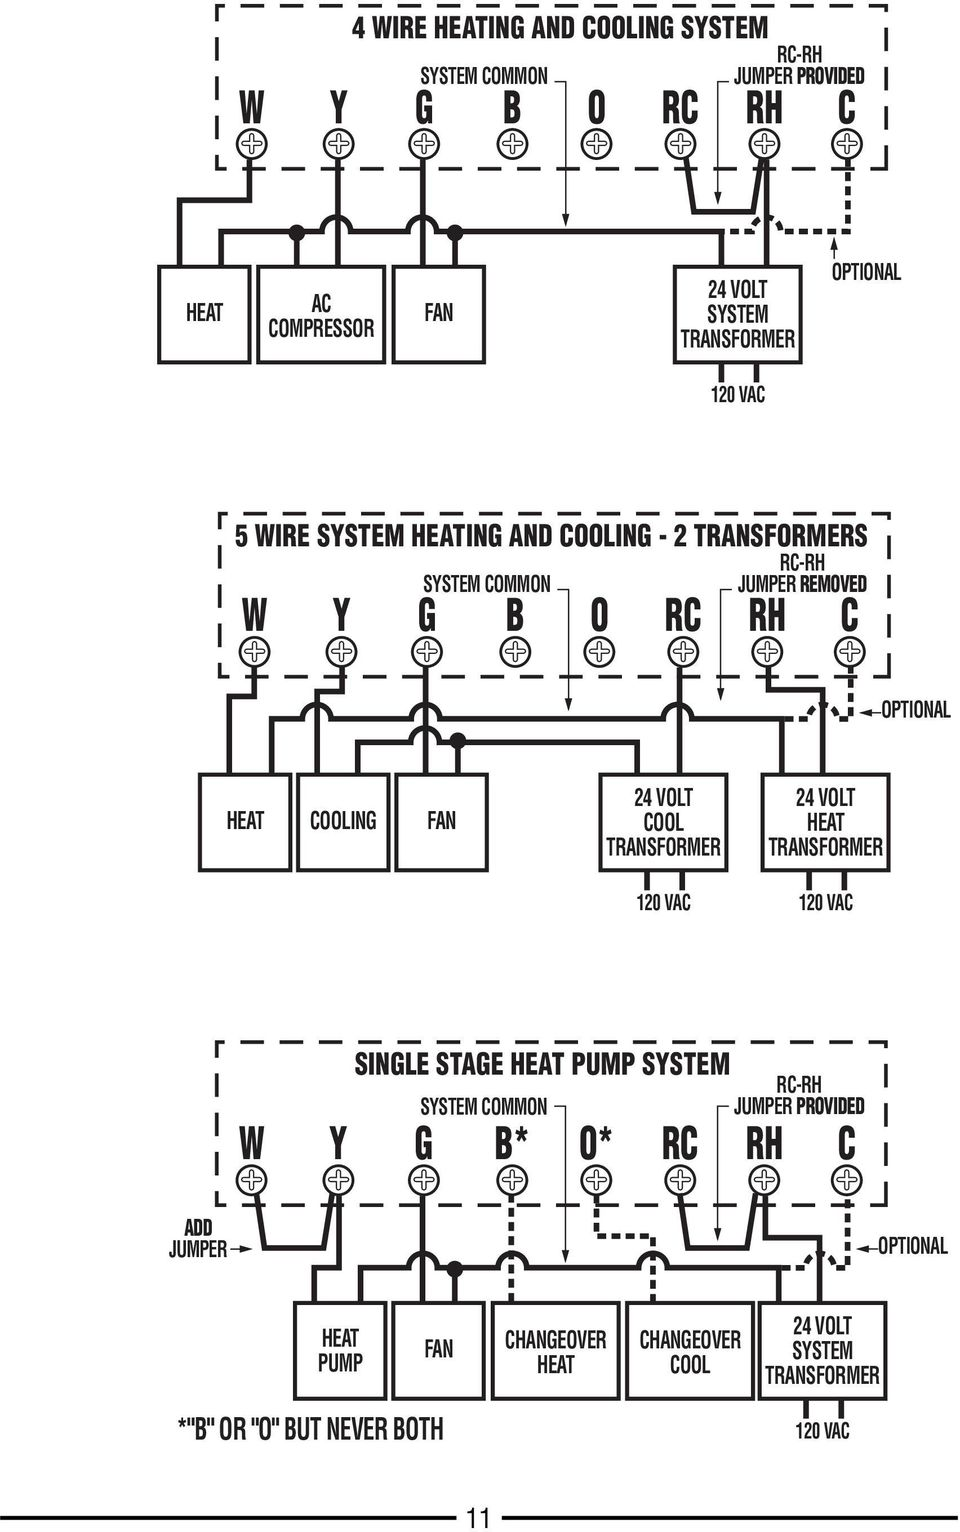 White Rodgers Rbm Type 91 Relay Wiring Diagram Rogers Heat Pump Diagrams